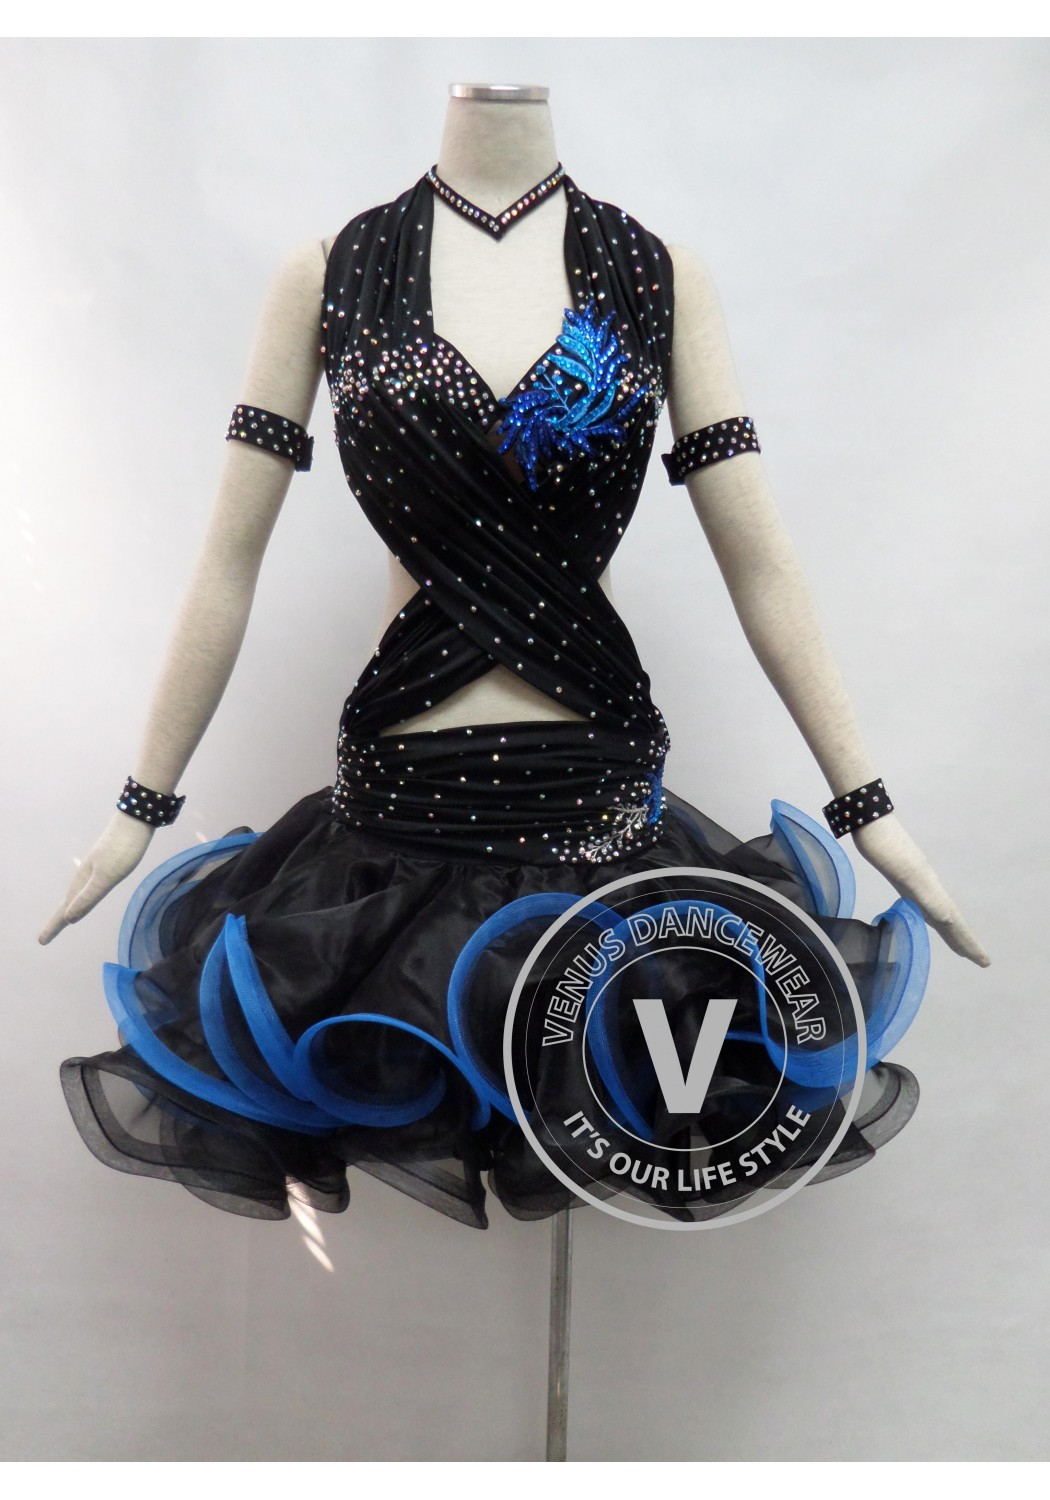 Black Competition Latin Rhythm Dancing Dress